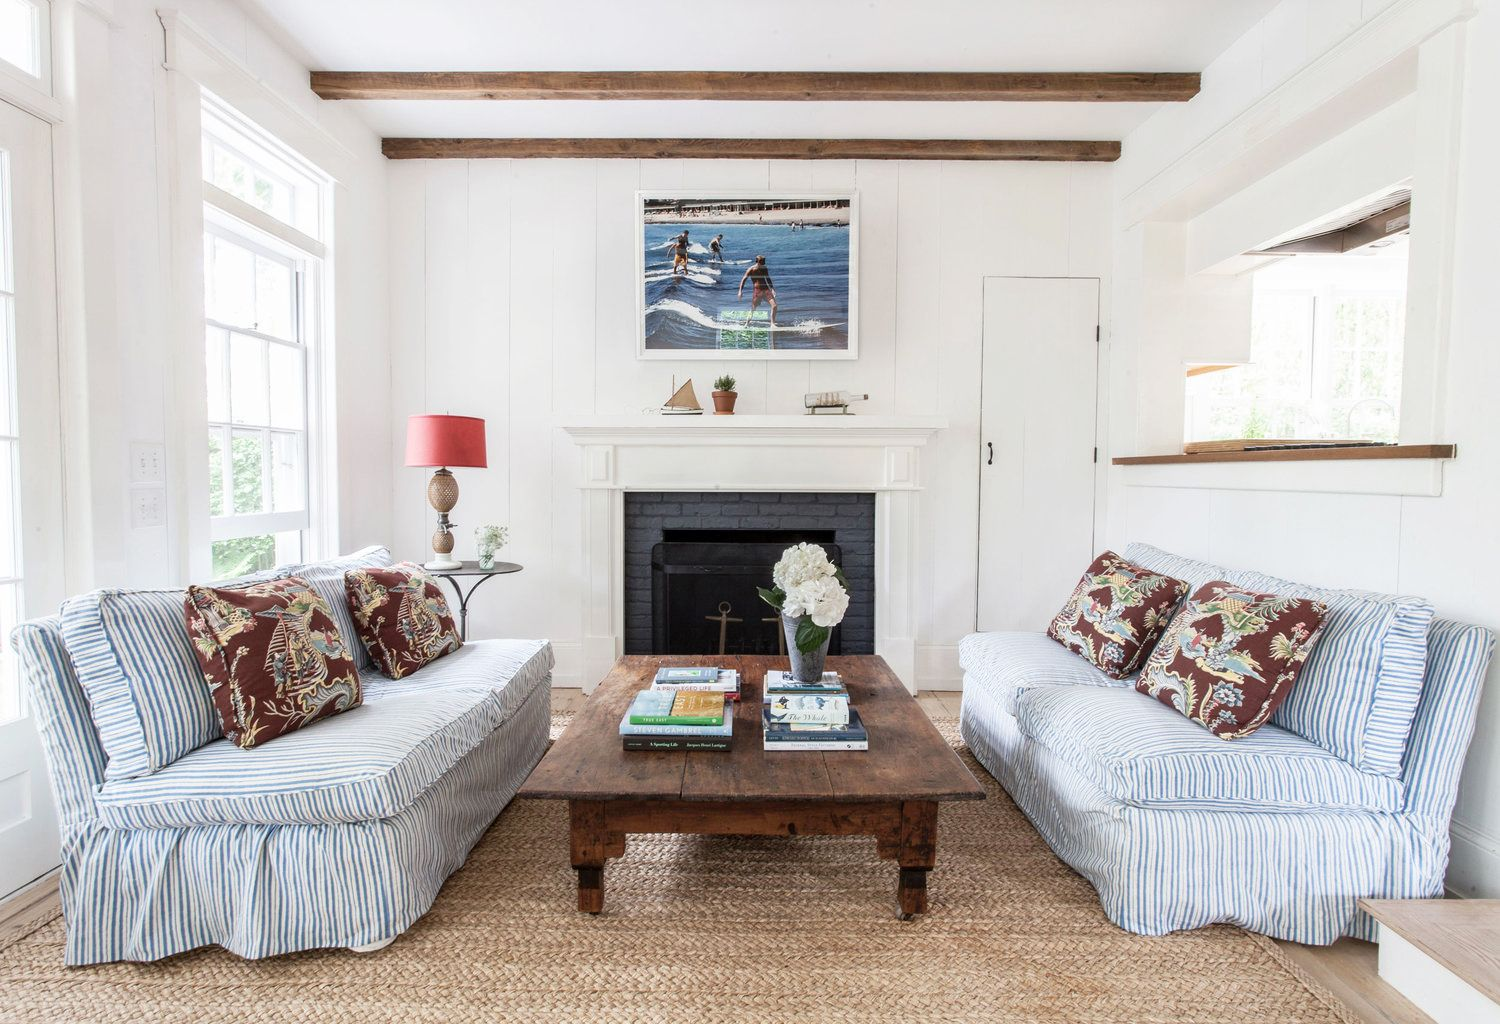 14 Ways to Transform a Fireplace With a Simple Coat of Paint